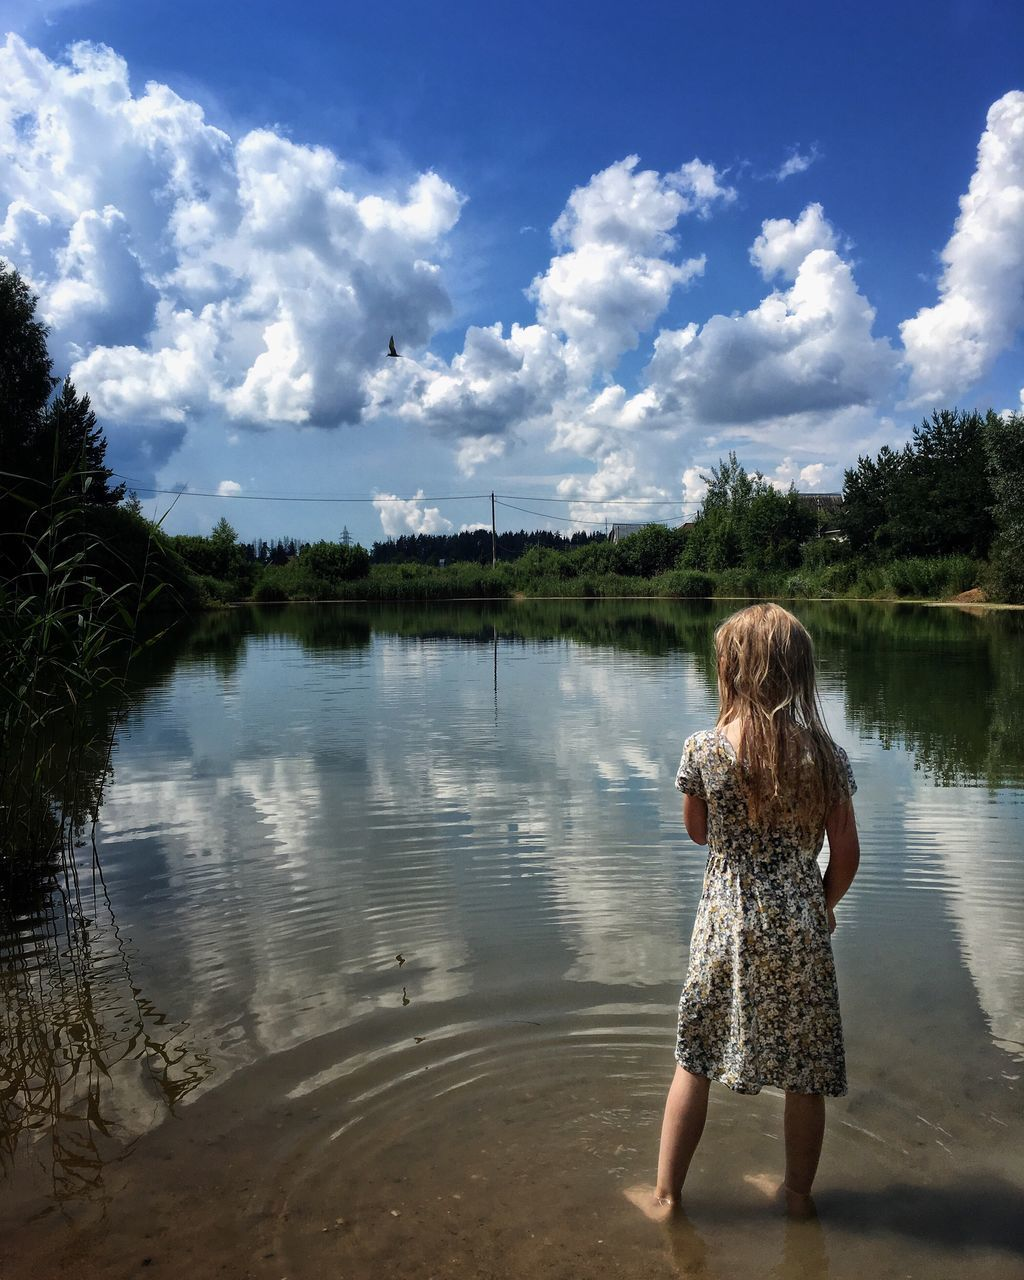 water, one person, real people, sky, standing, day, rear view, nature, tree, leisure activity, casual clothing, outdoors, childhood, cloud - sky, full length, tranquility, beauty in nature, young adult, young women, people